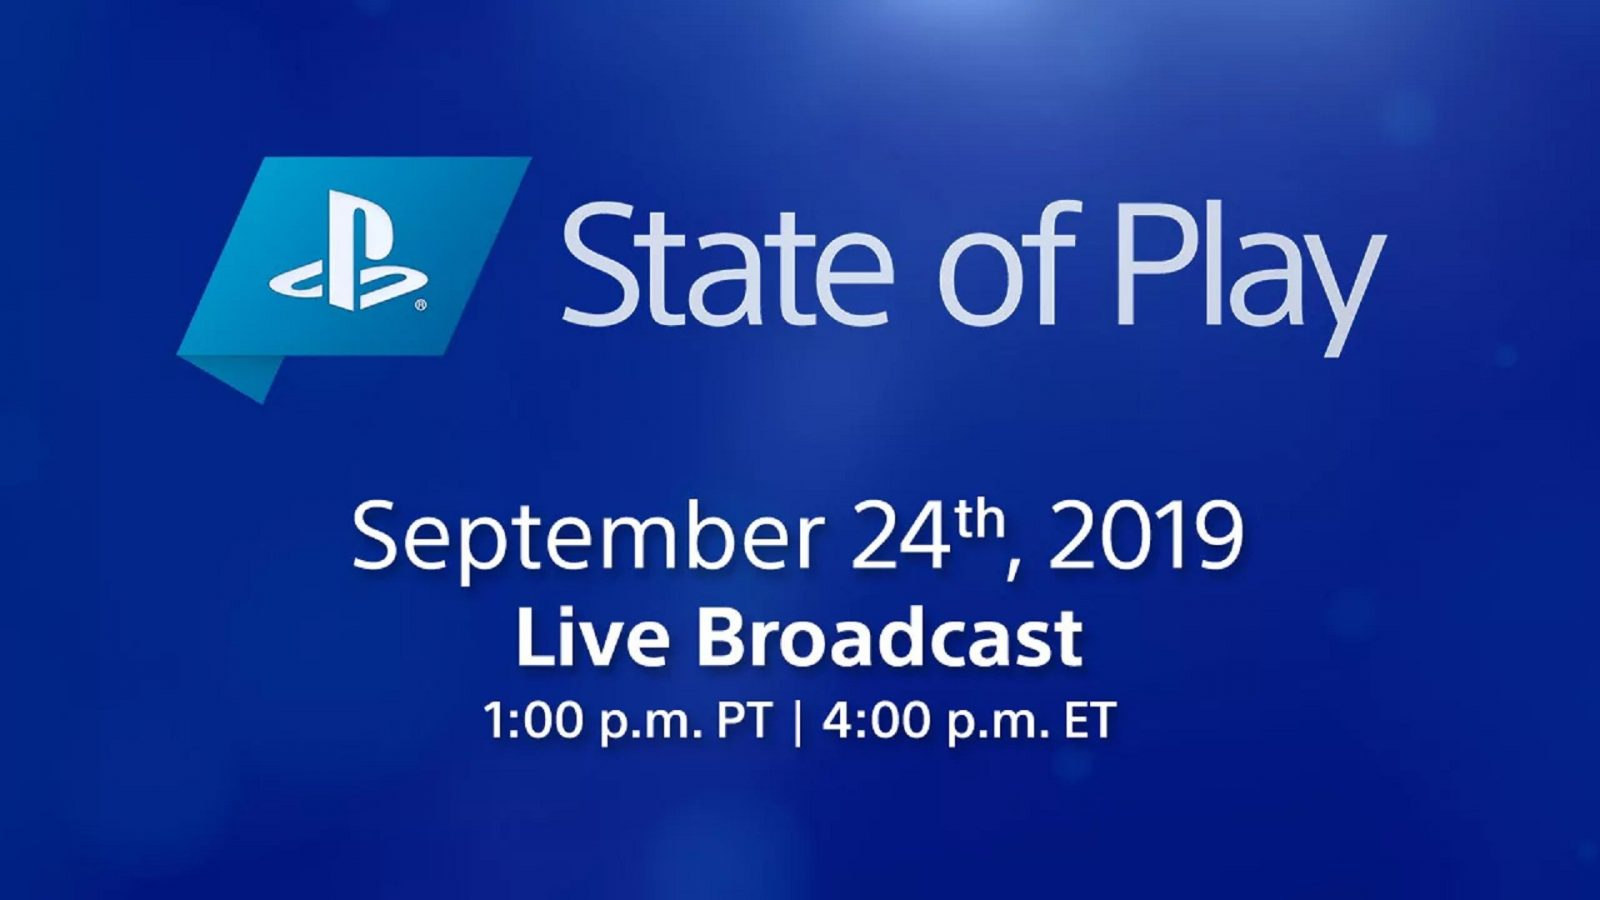 Next PlayStation State of Play Will be on September 24th